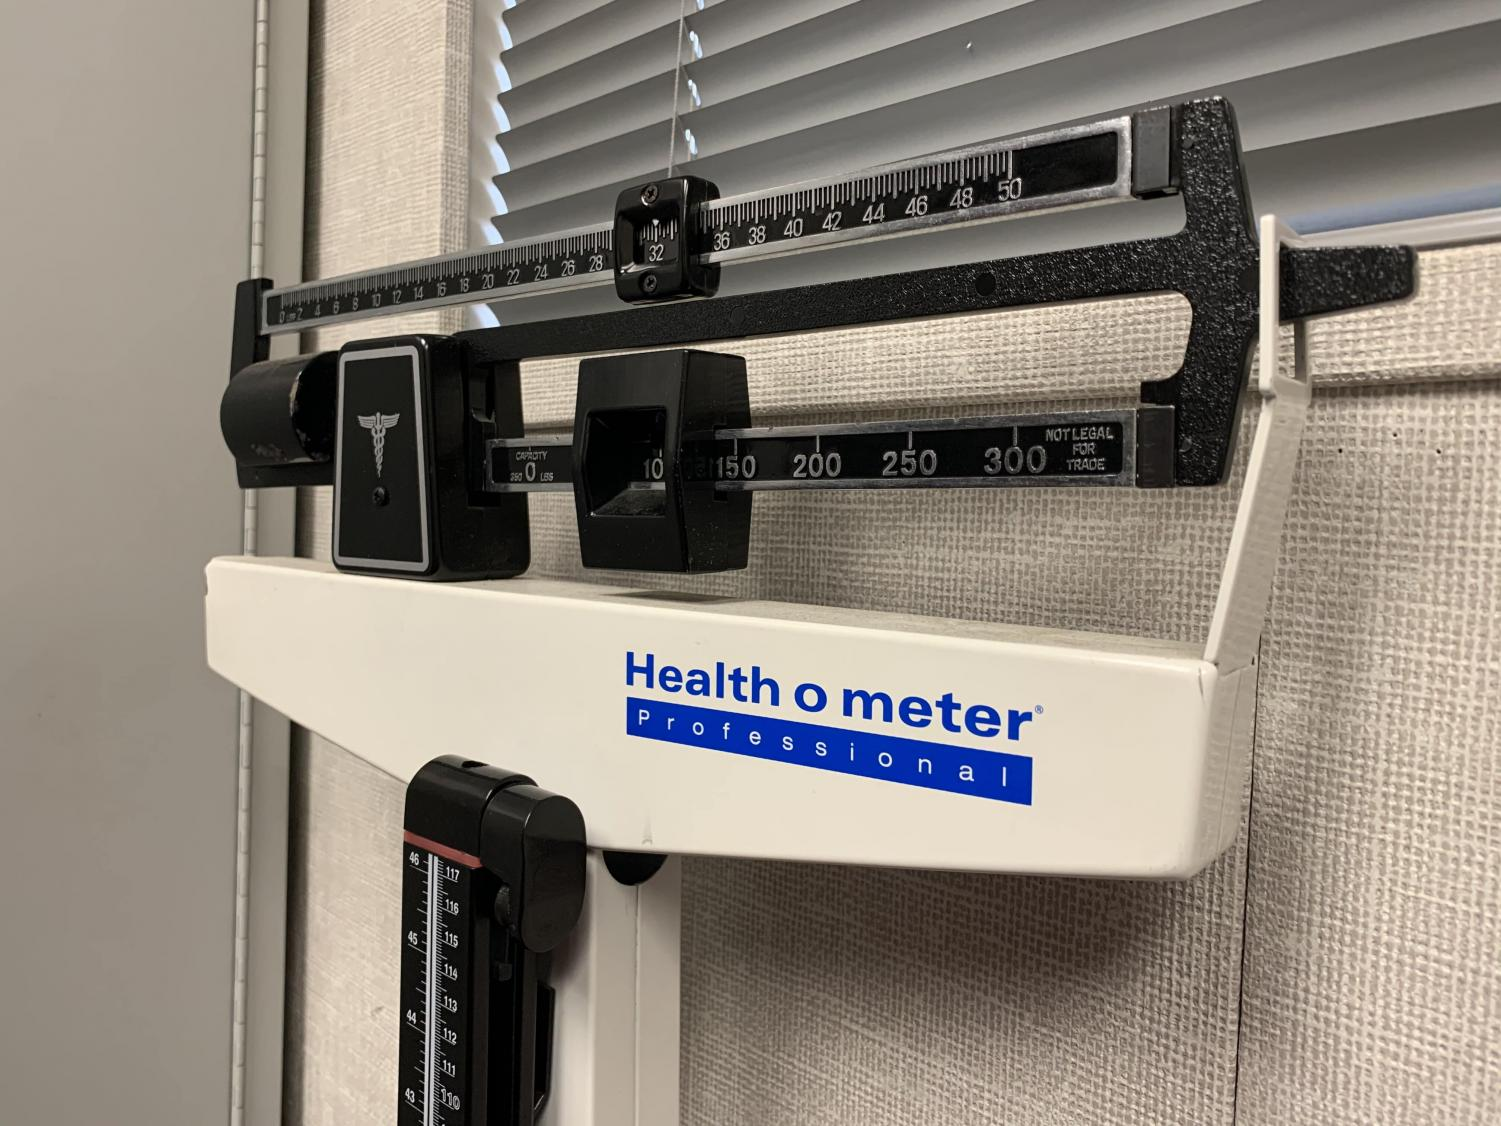 People with eating disorders may think the scale determines their worth.